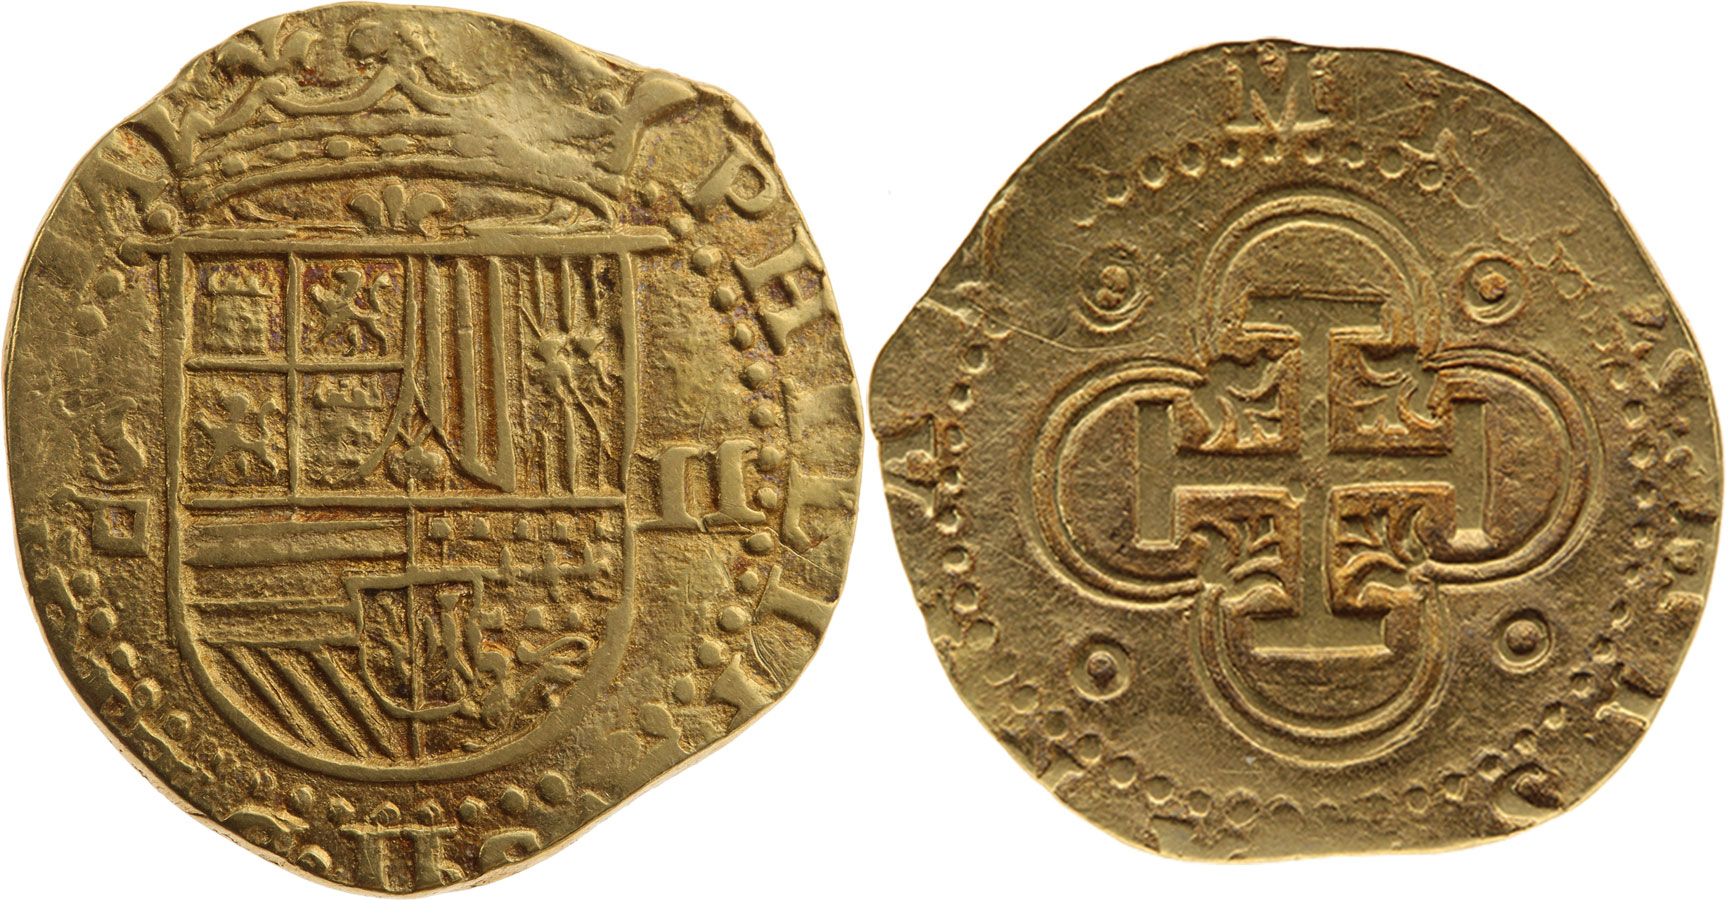 Kingdom of Spain, Philip II 2 escudos (doubloon), n. d. (1556–1598)